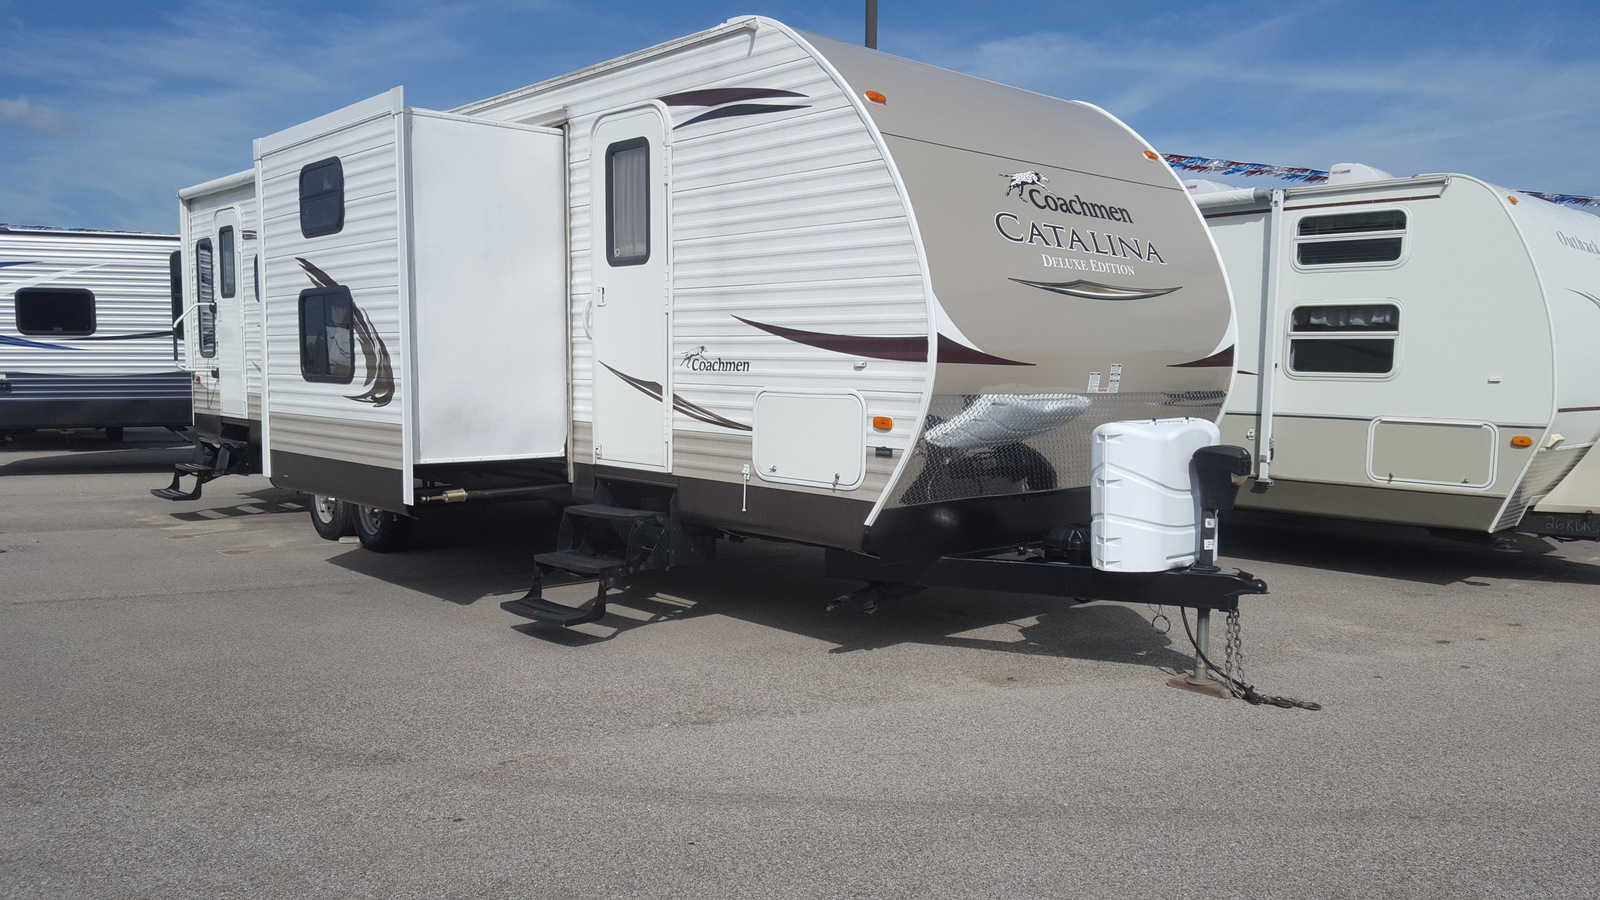 USED 2013 Forest River CATALINA 31RLS - American RV